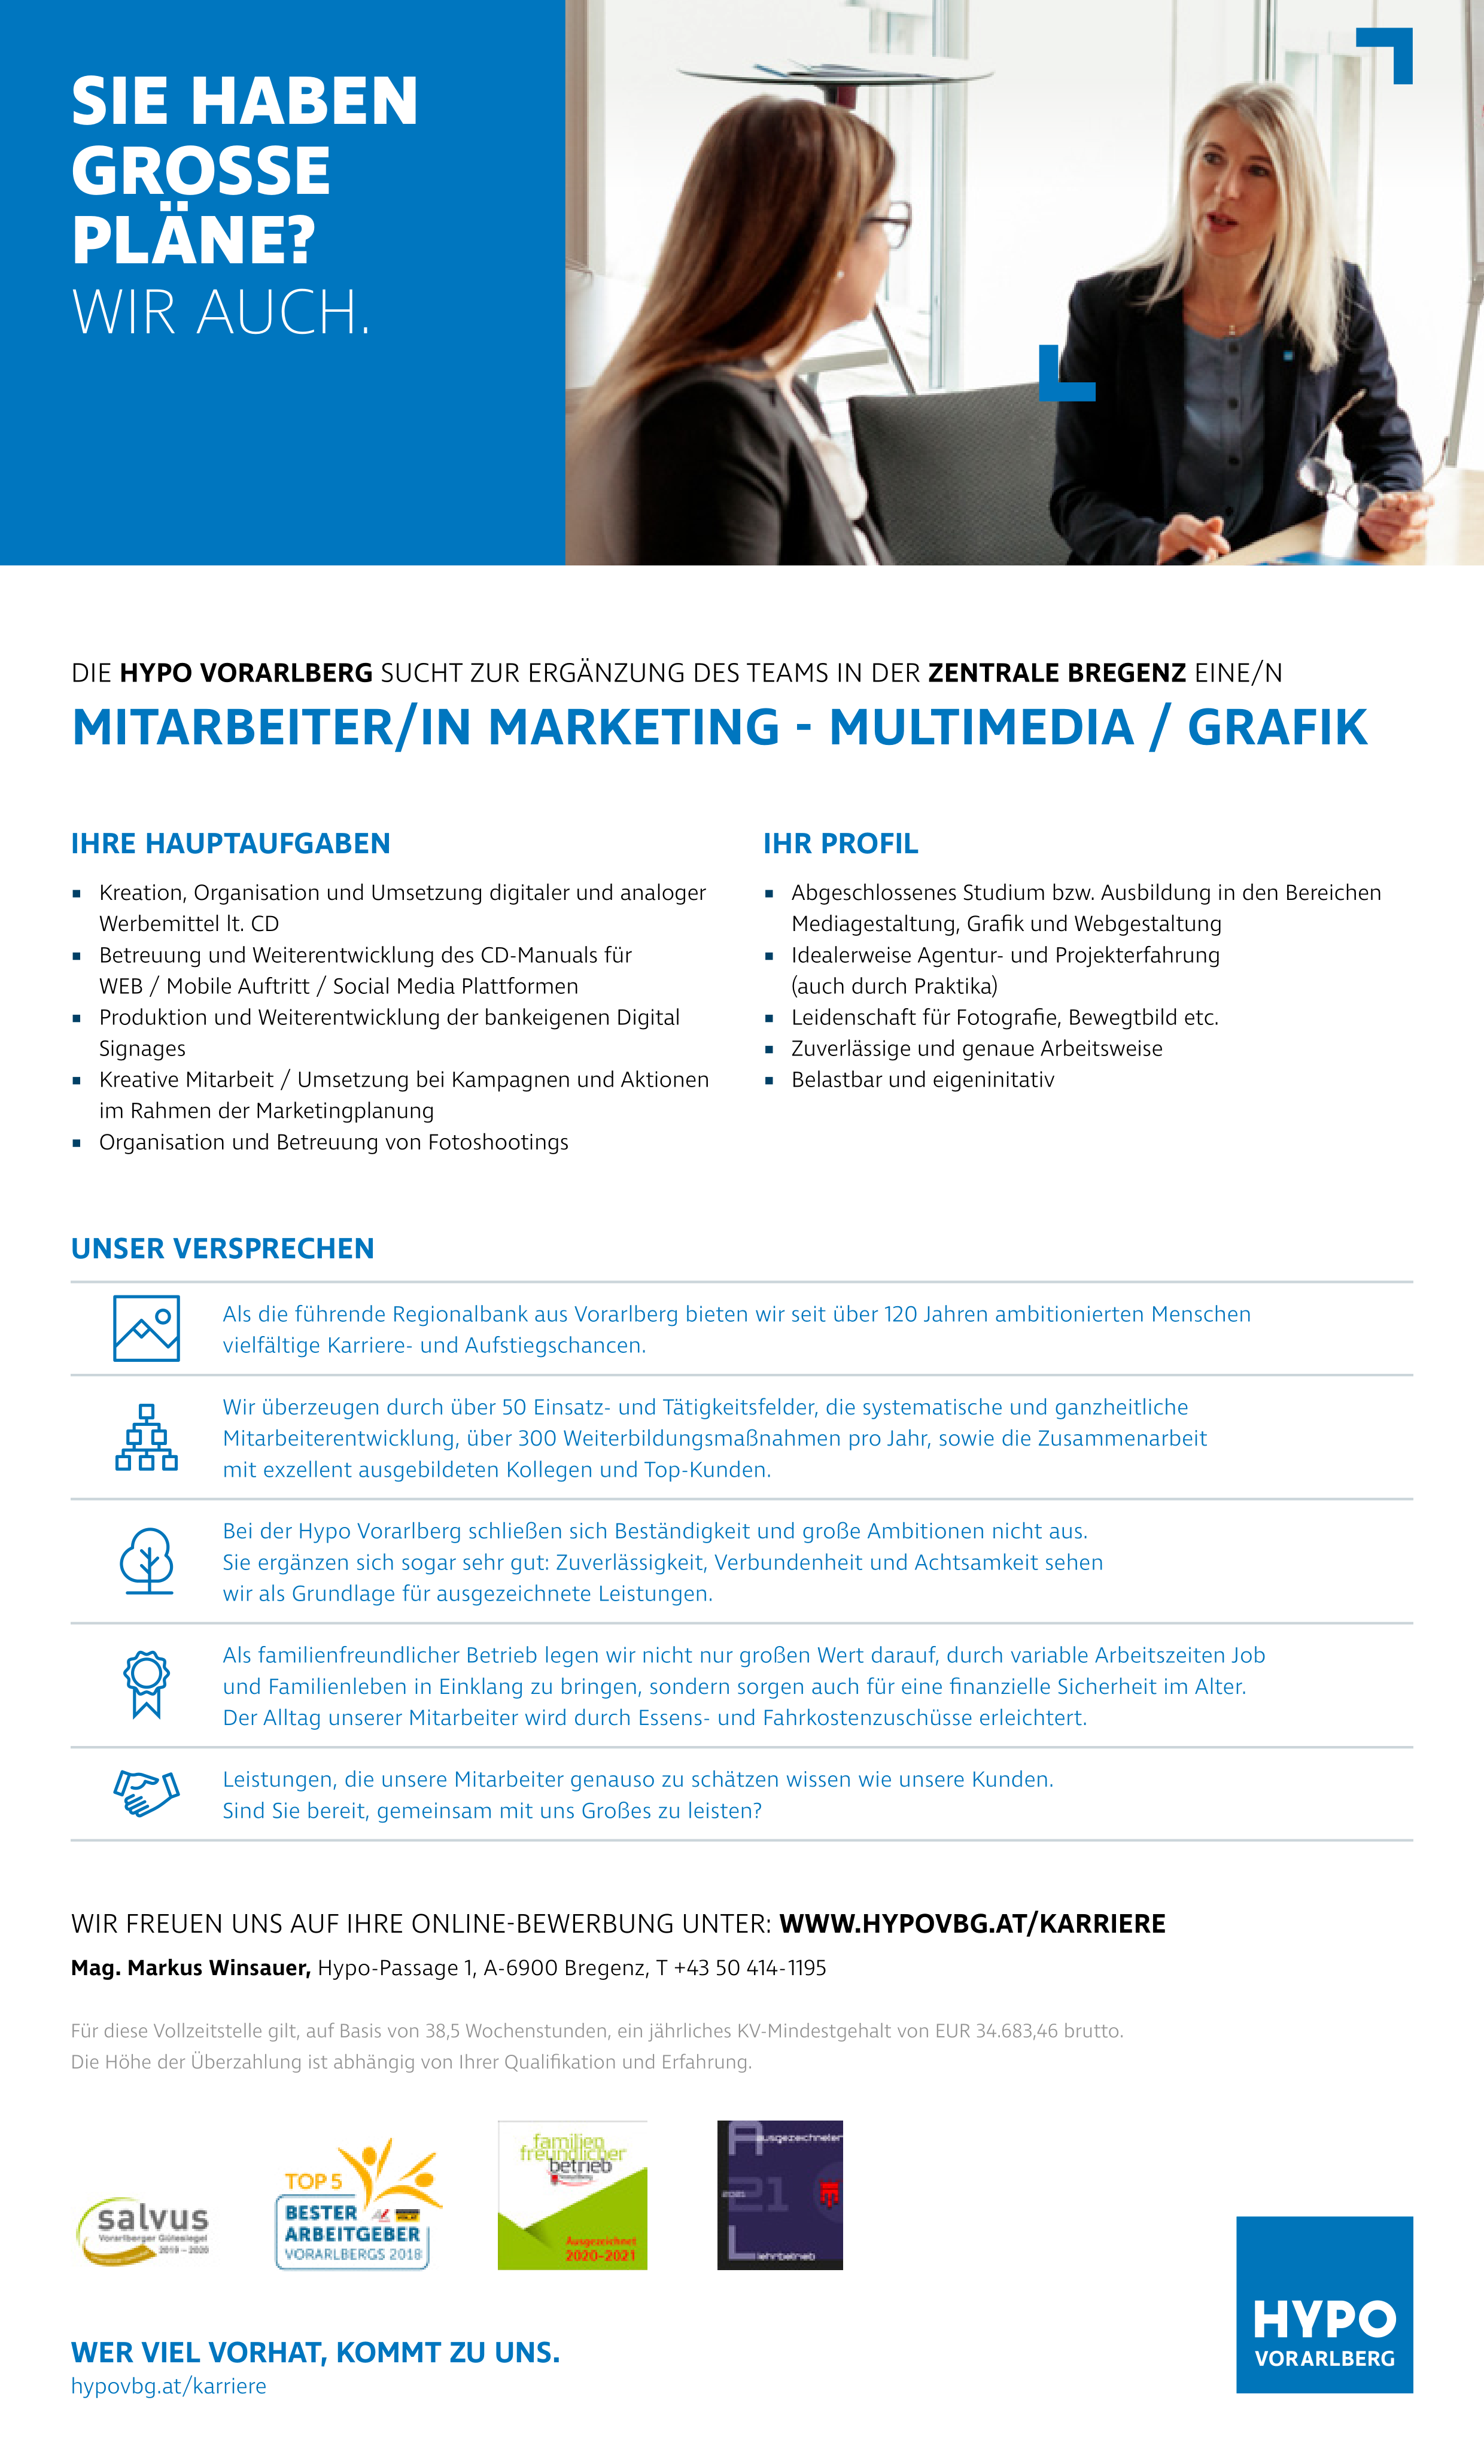 MITARBEITER/IN MARKETING - MULTIMEDIA/GRAFIK